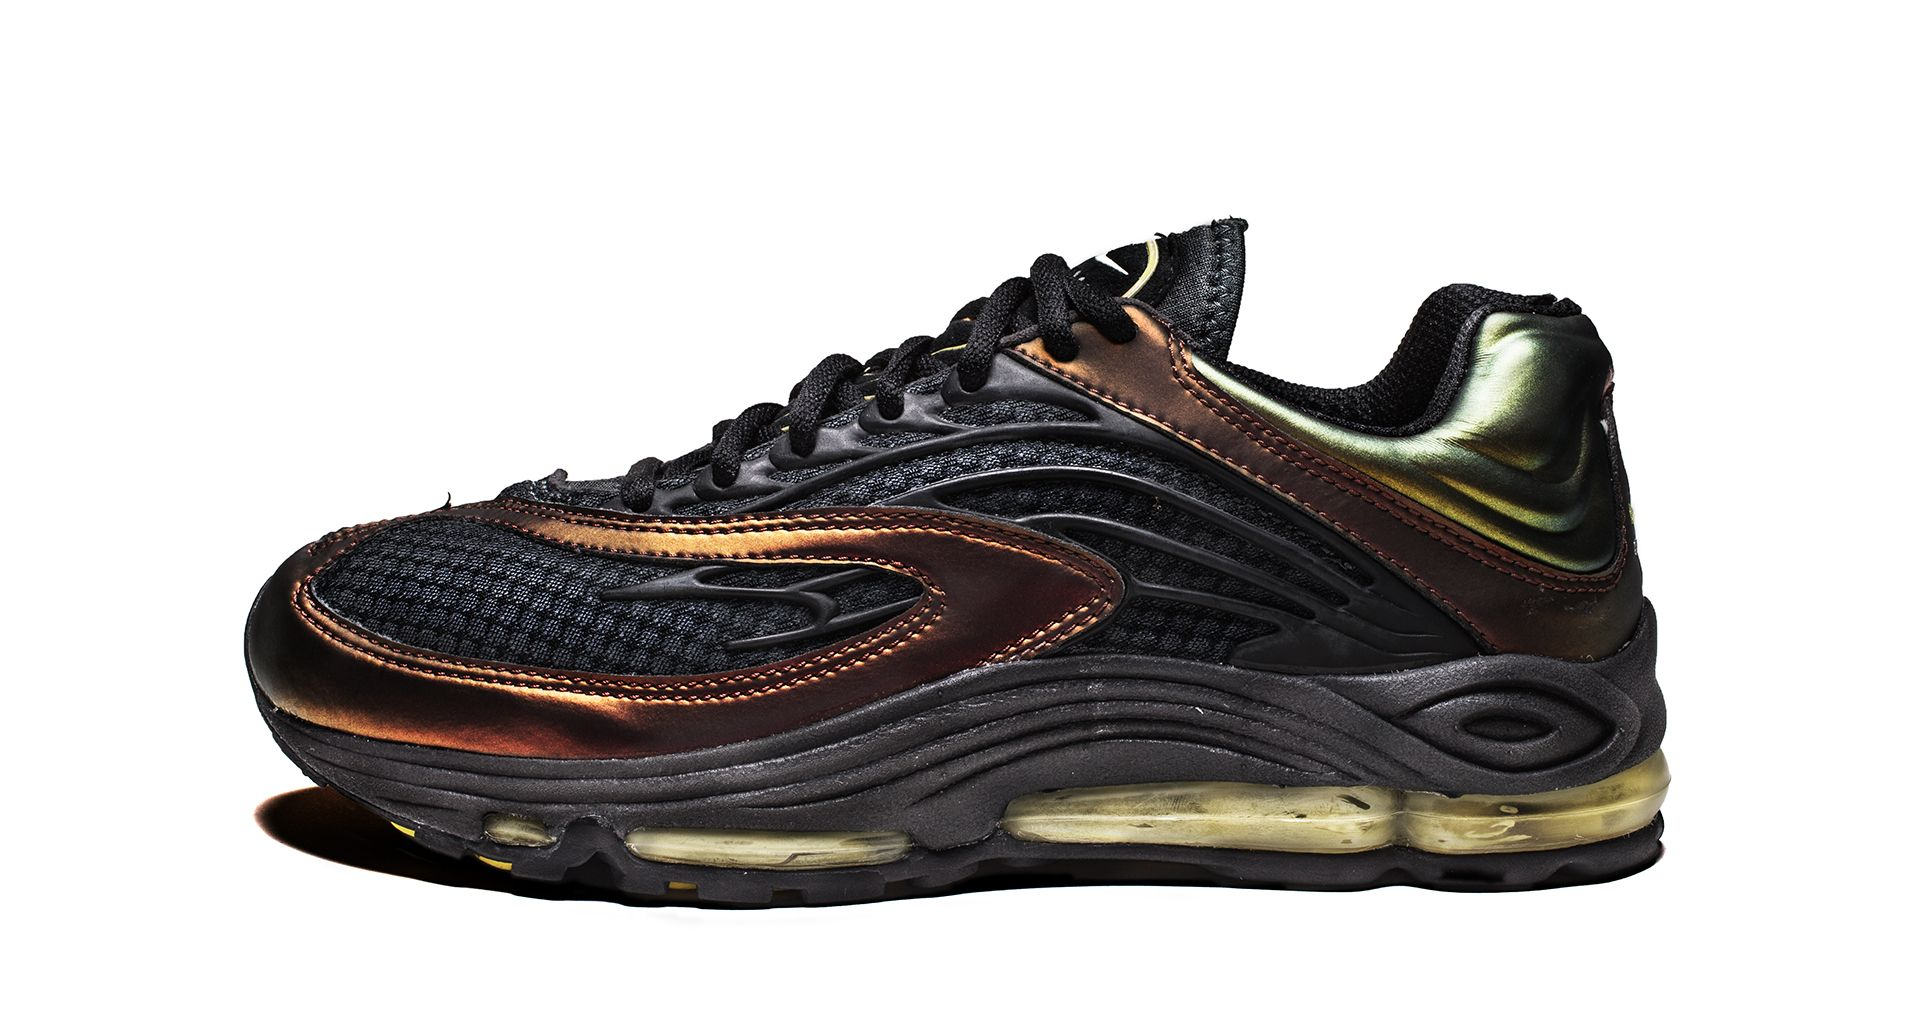 online store d6c6d 2a344 Nike Air Max 97 Ultra  17 x Skepta  The Design. The alternate colourway is also  seen on what a matching tracksuit that looks set to accompany